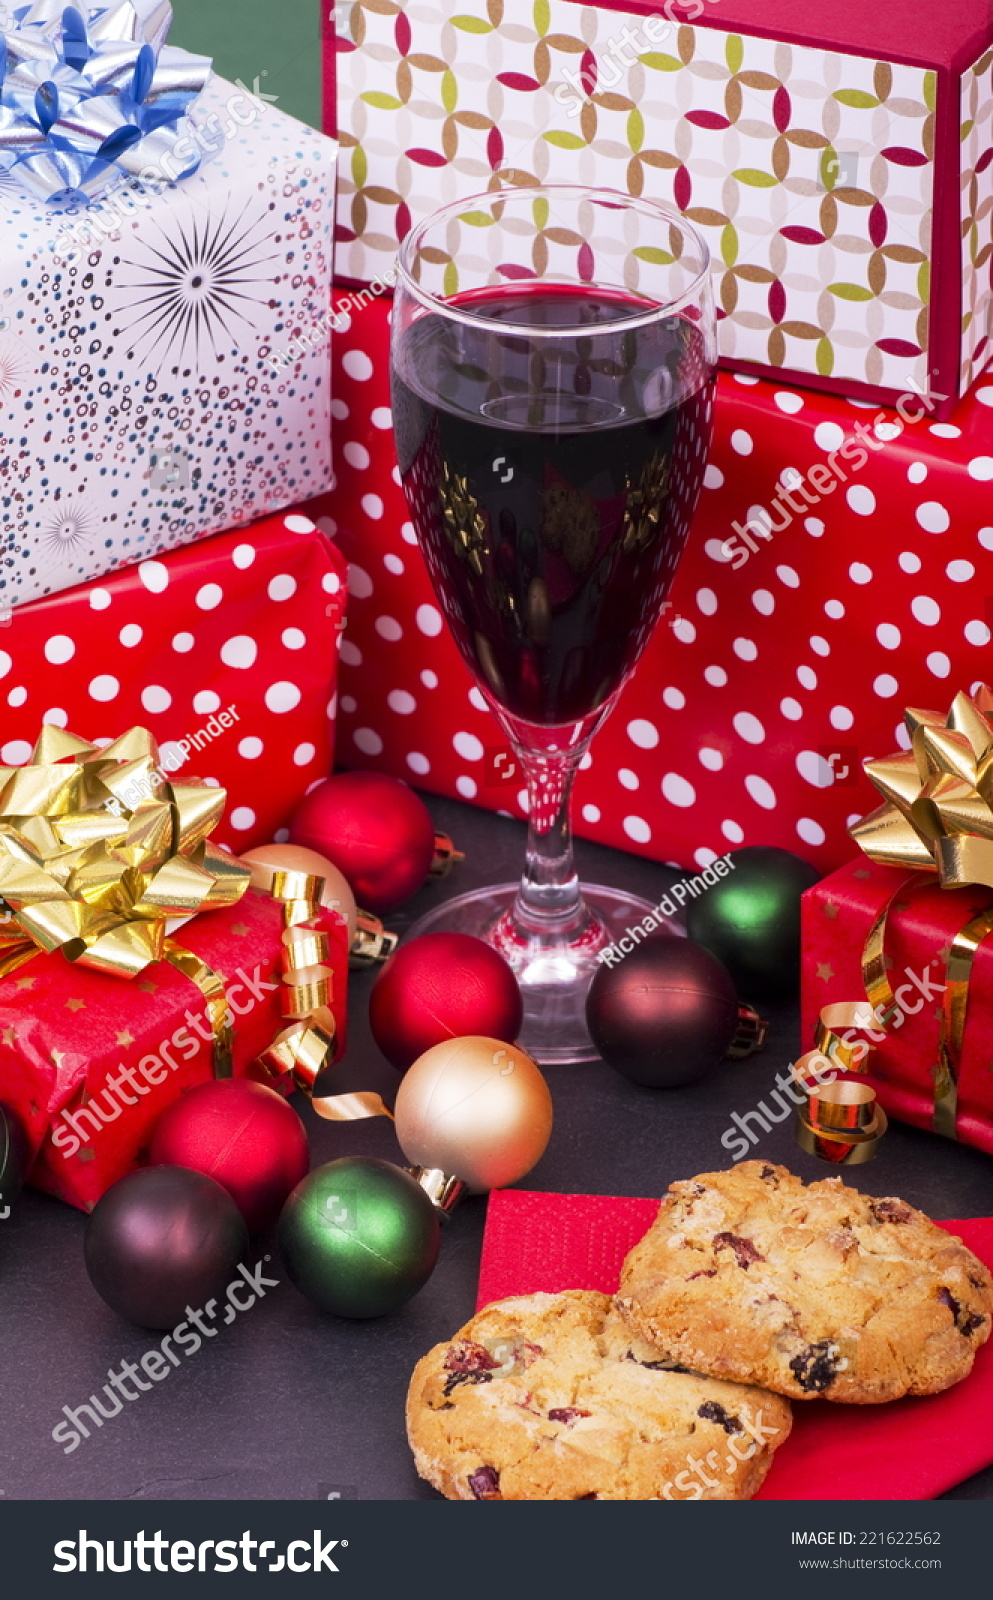 Christmas Cookies Red Wine Presents Selection Stock Photo Edit Now 221622562